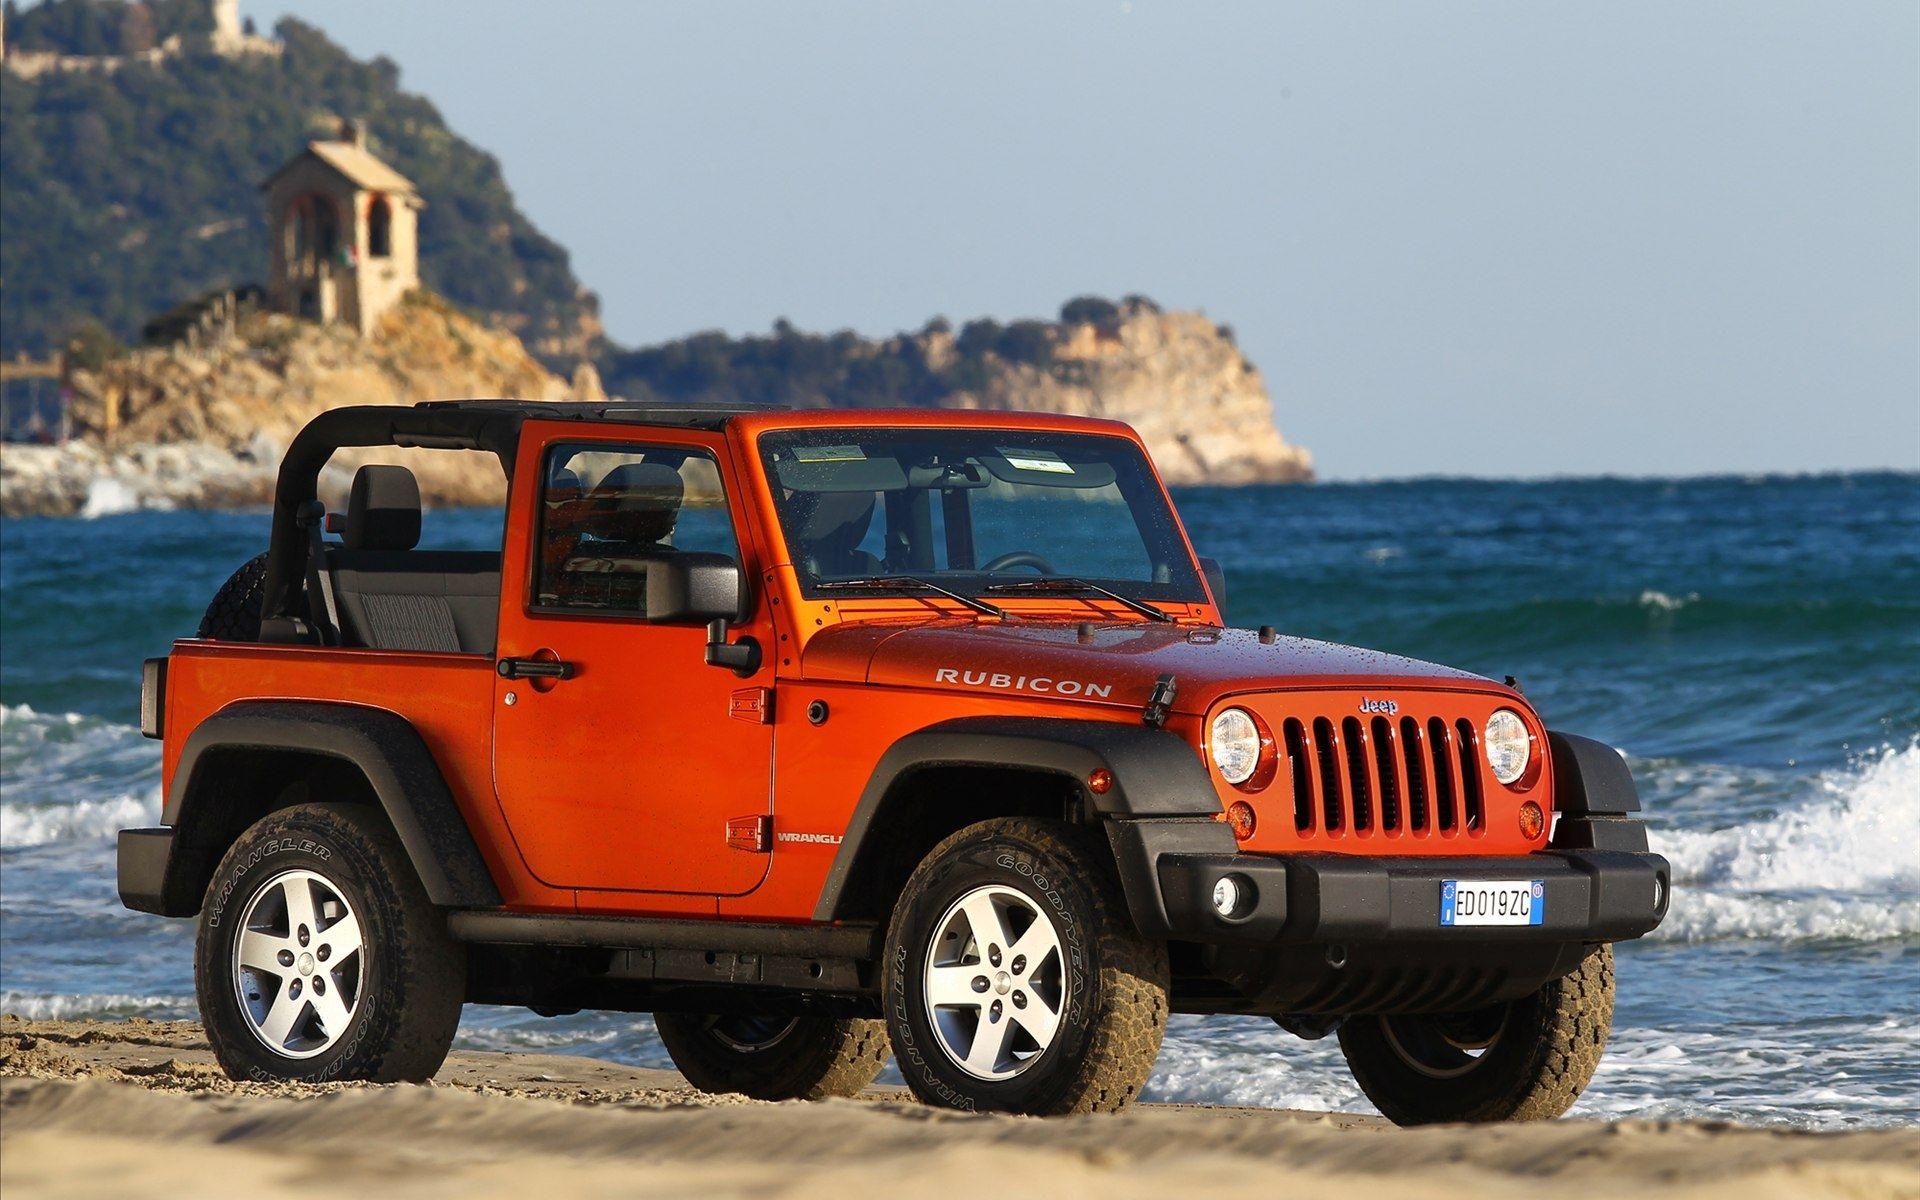 2012 jeep wrangler rubicon front right beach front